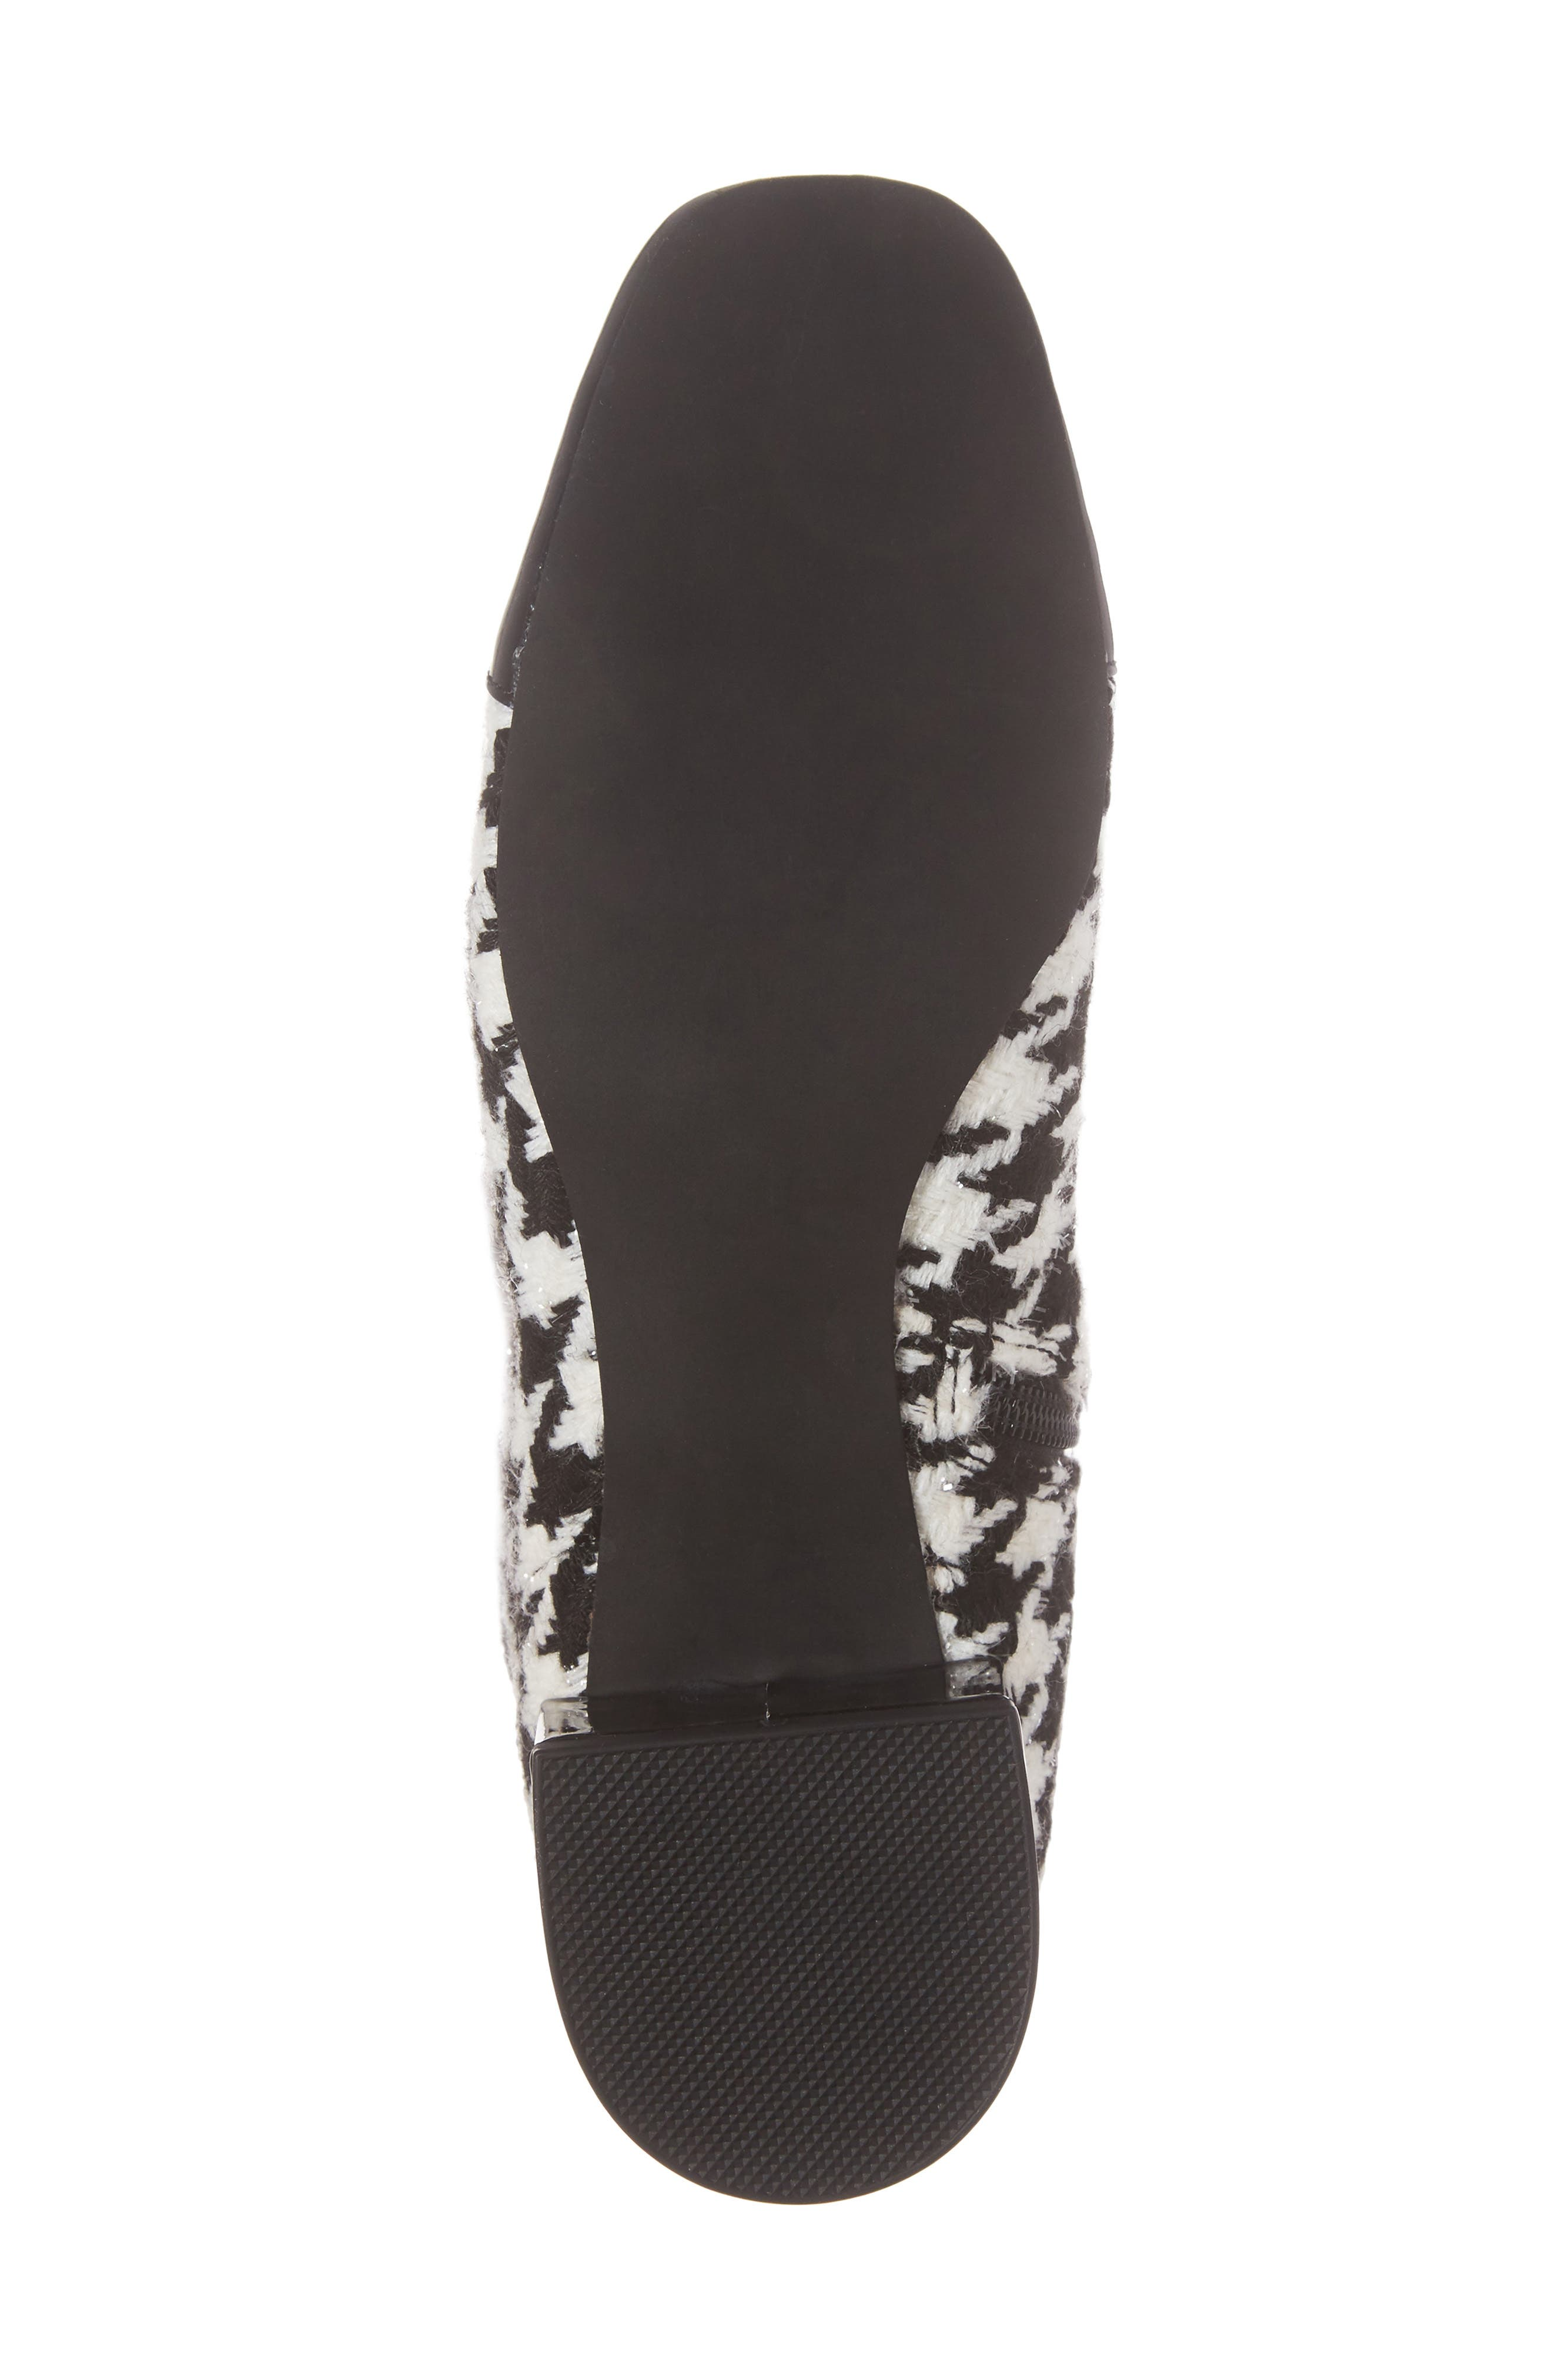 Covey Knee-High Boot,                             Alternate thumbnail 6, color,                             Black White Houndstooth